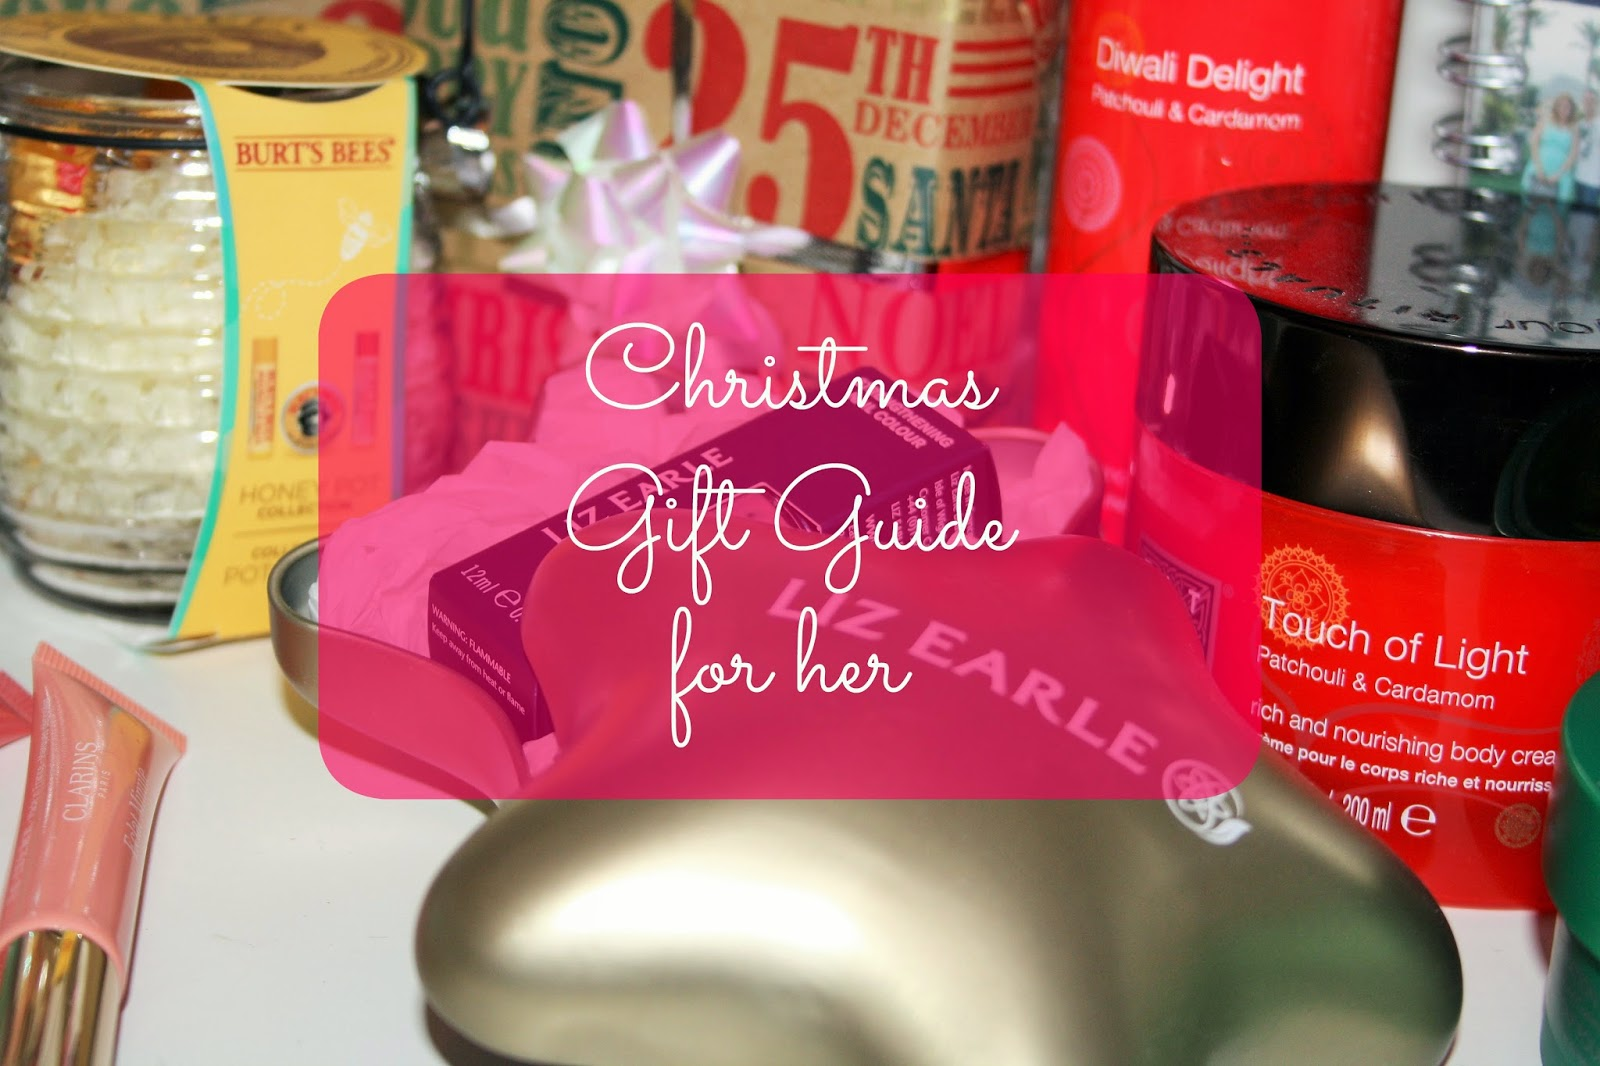 CHRISTMAS GIFT GUIDE 2014: GIFTS FOR HER - PRETTY YOUNG THING